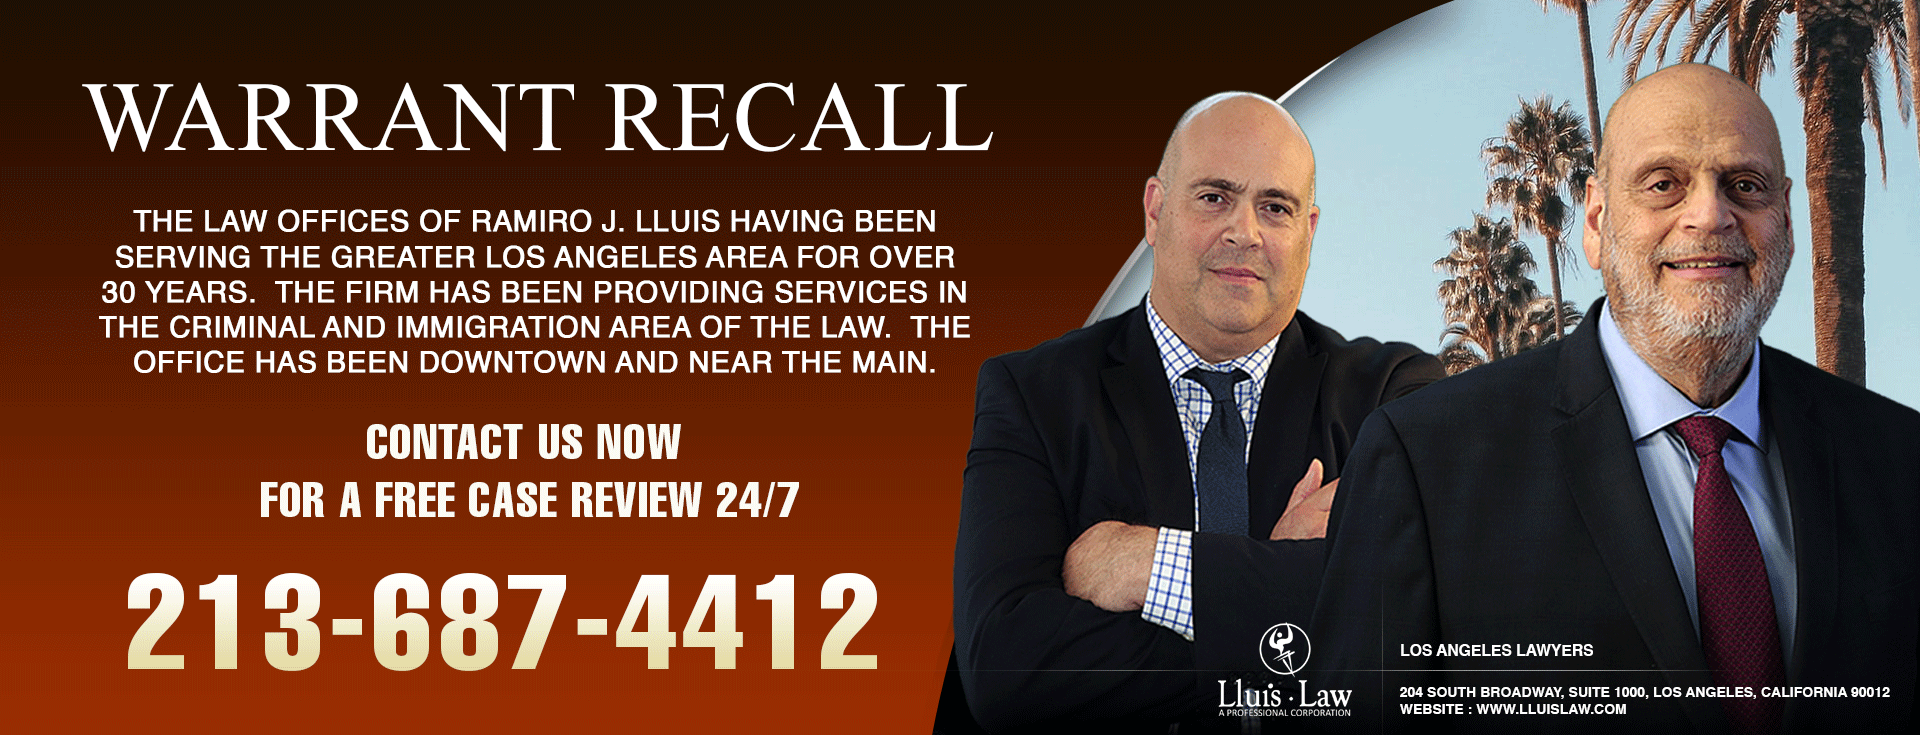 los angeles warrant recall lawyers